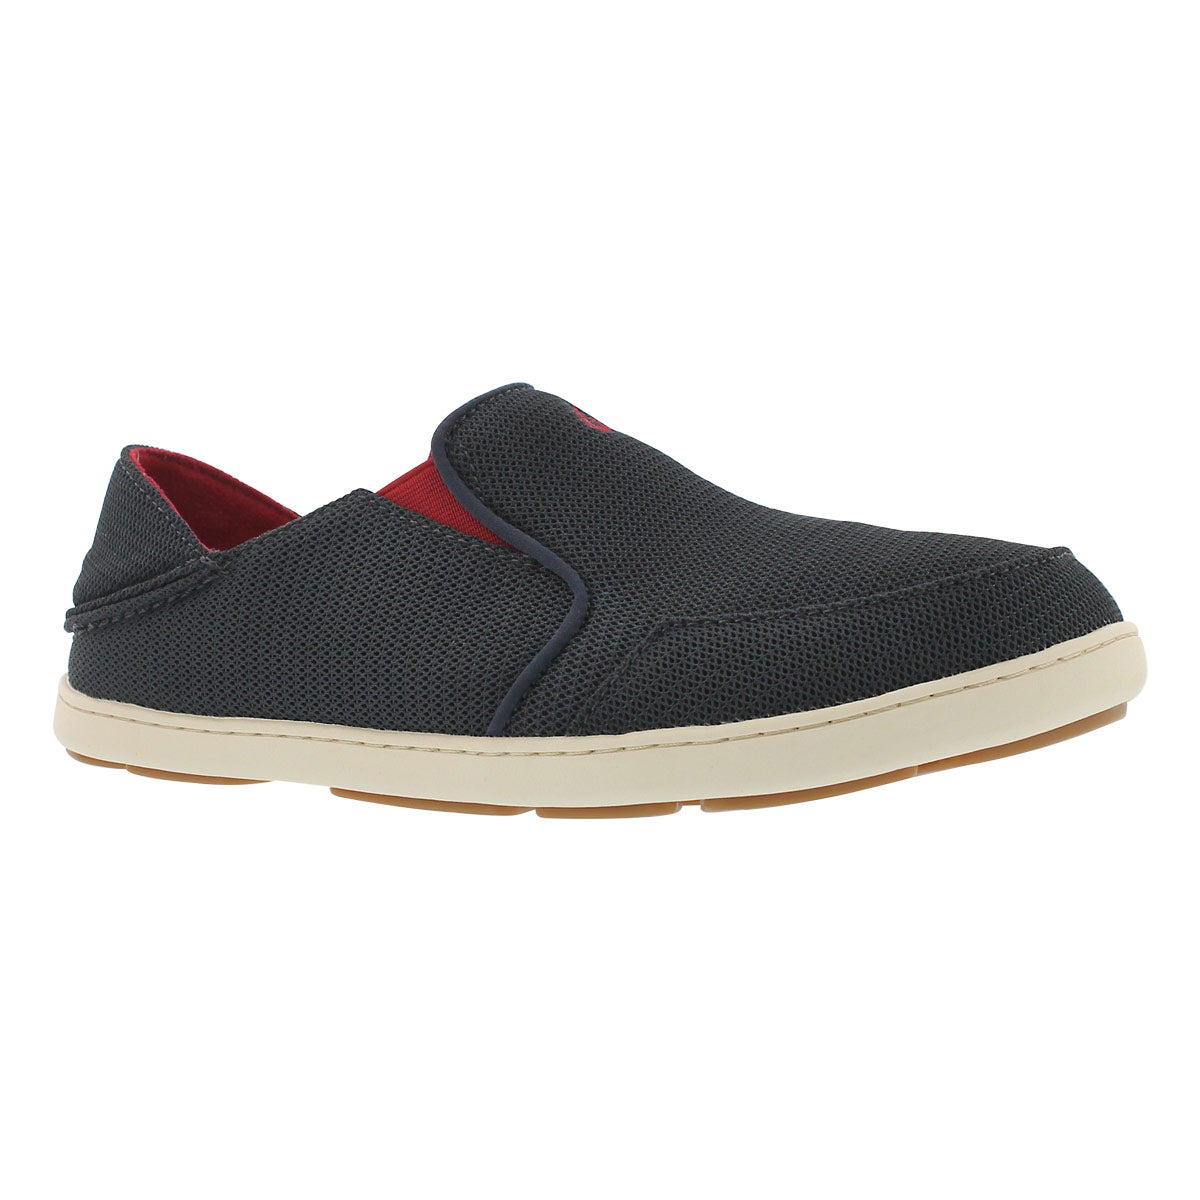 Men's NOHEA MESH carbon/red  slip on casual shoes